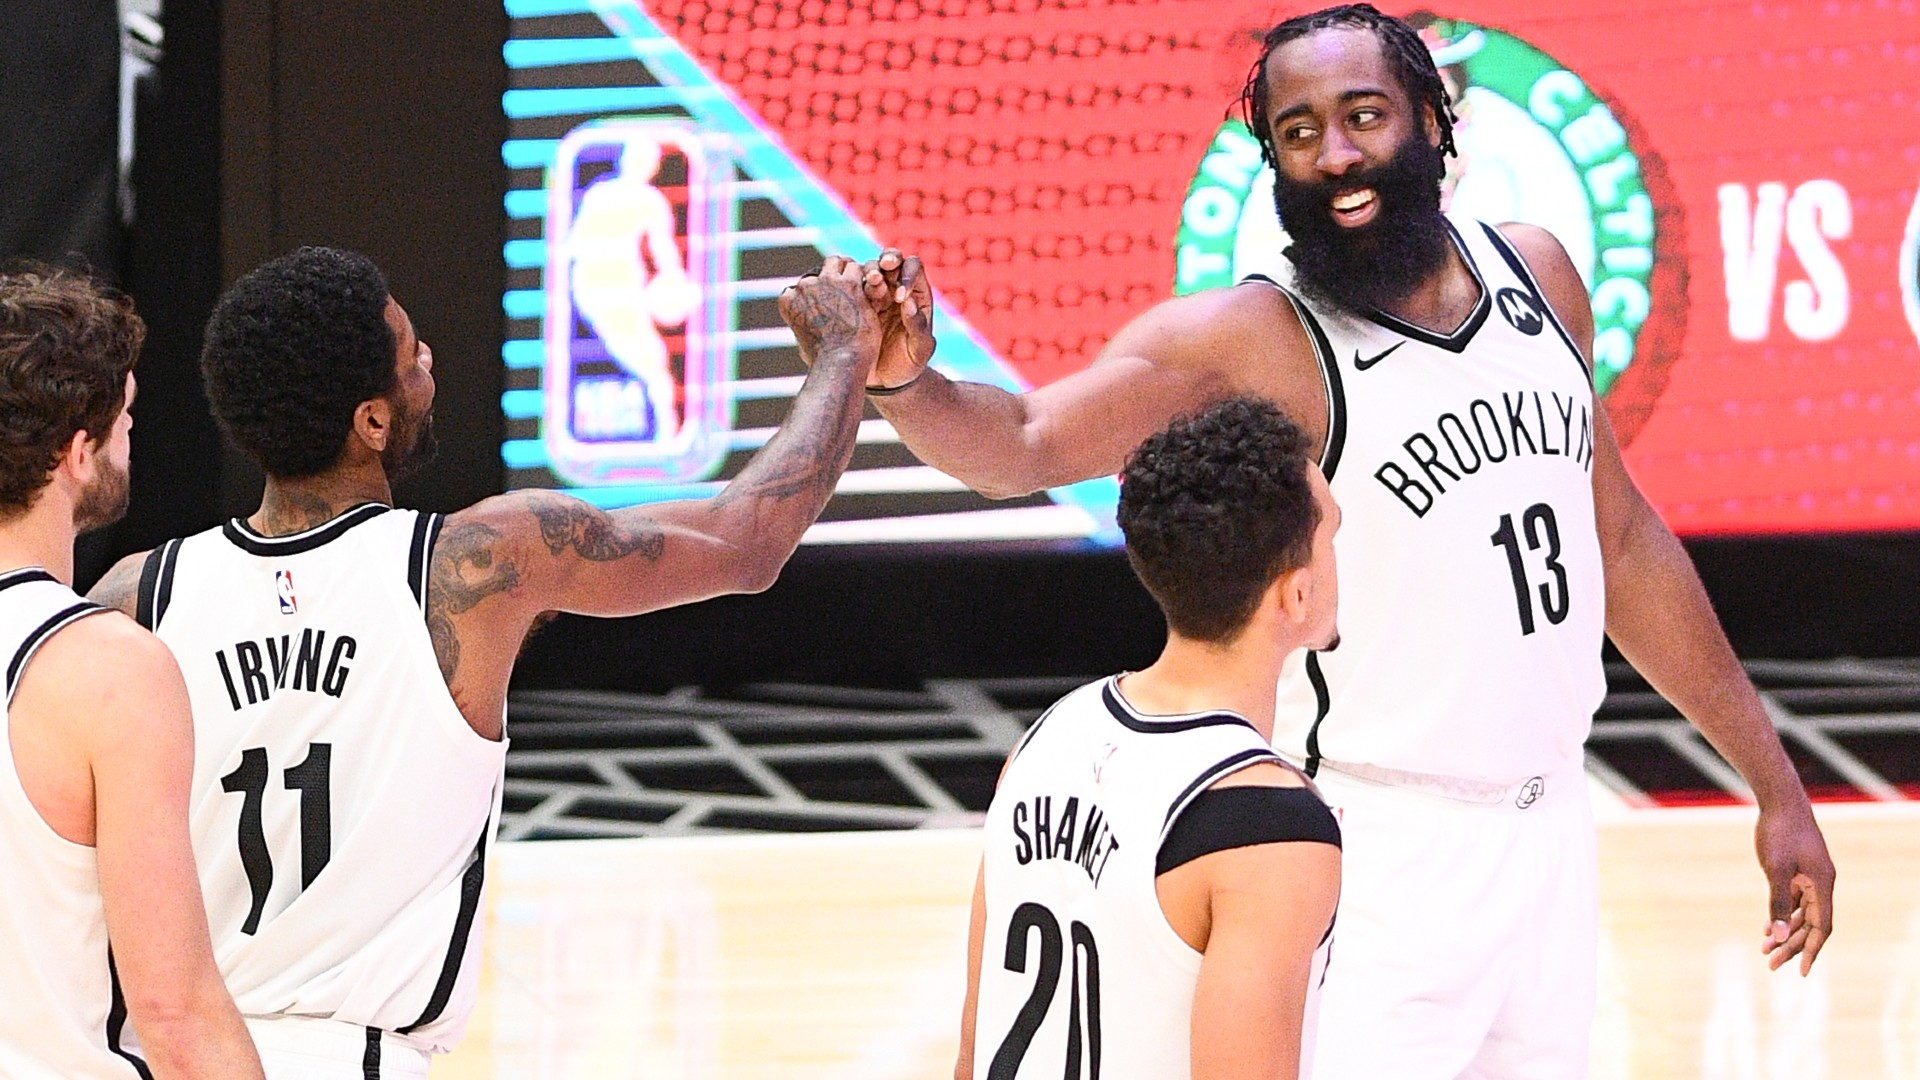 James Harden and Brooklyn Nets team-mate Kyrie Irving reacted to Sunday's win over the Los Angeles Clippers.